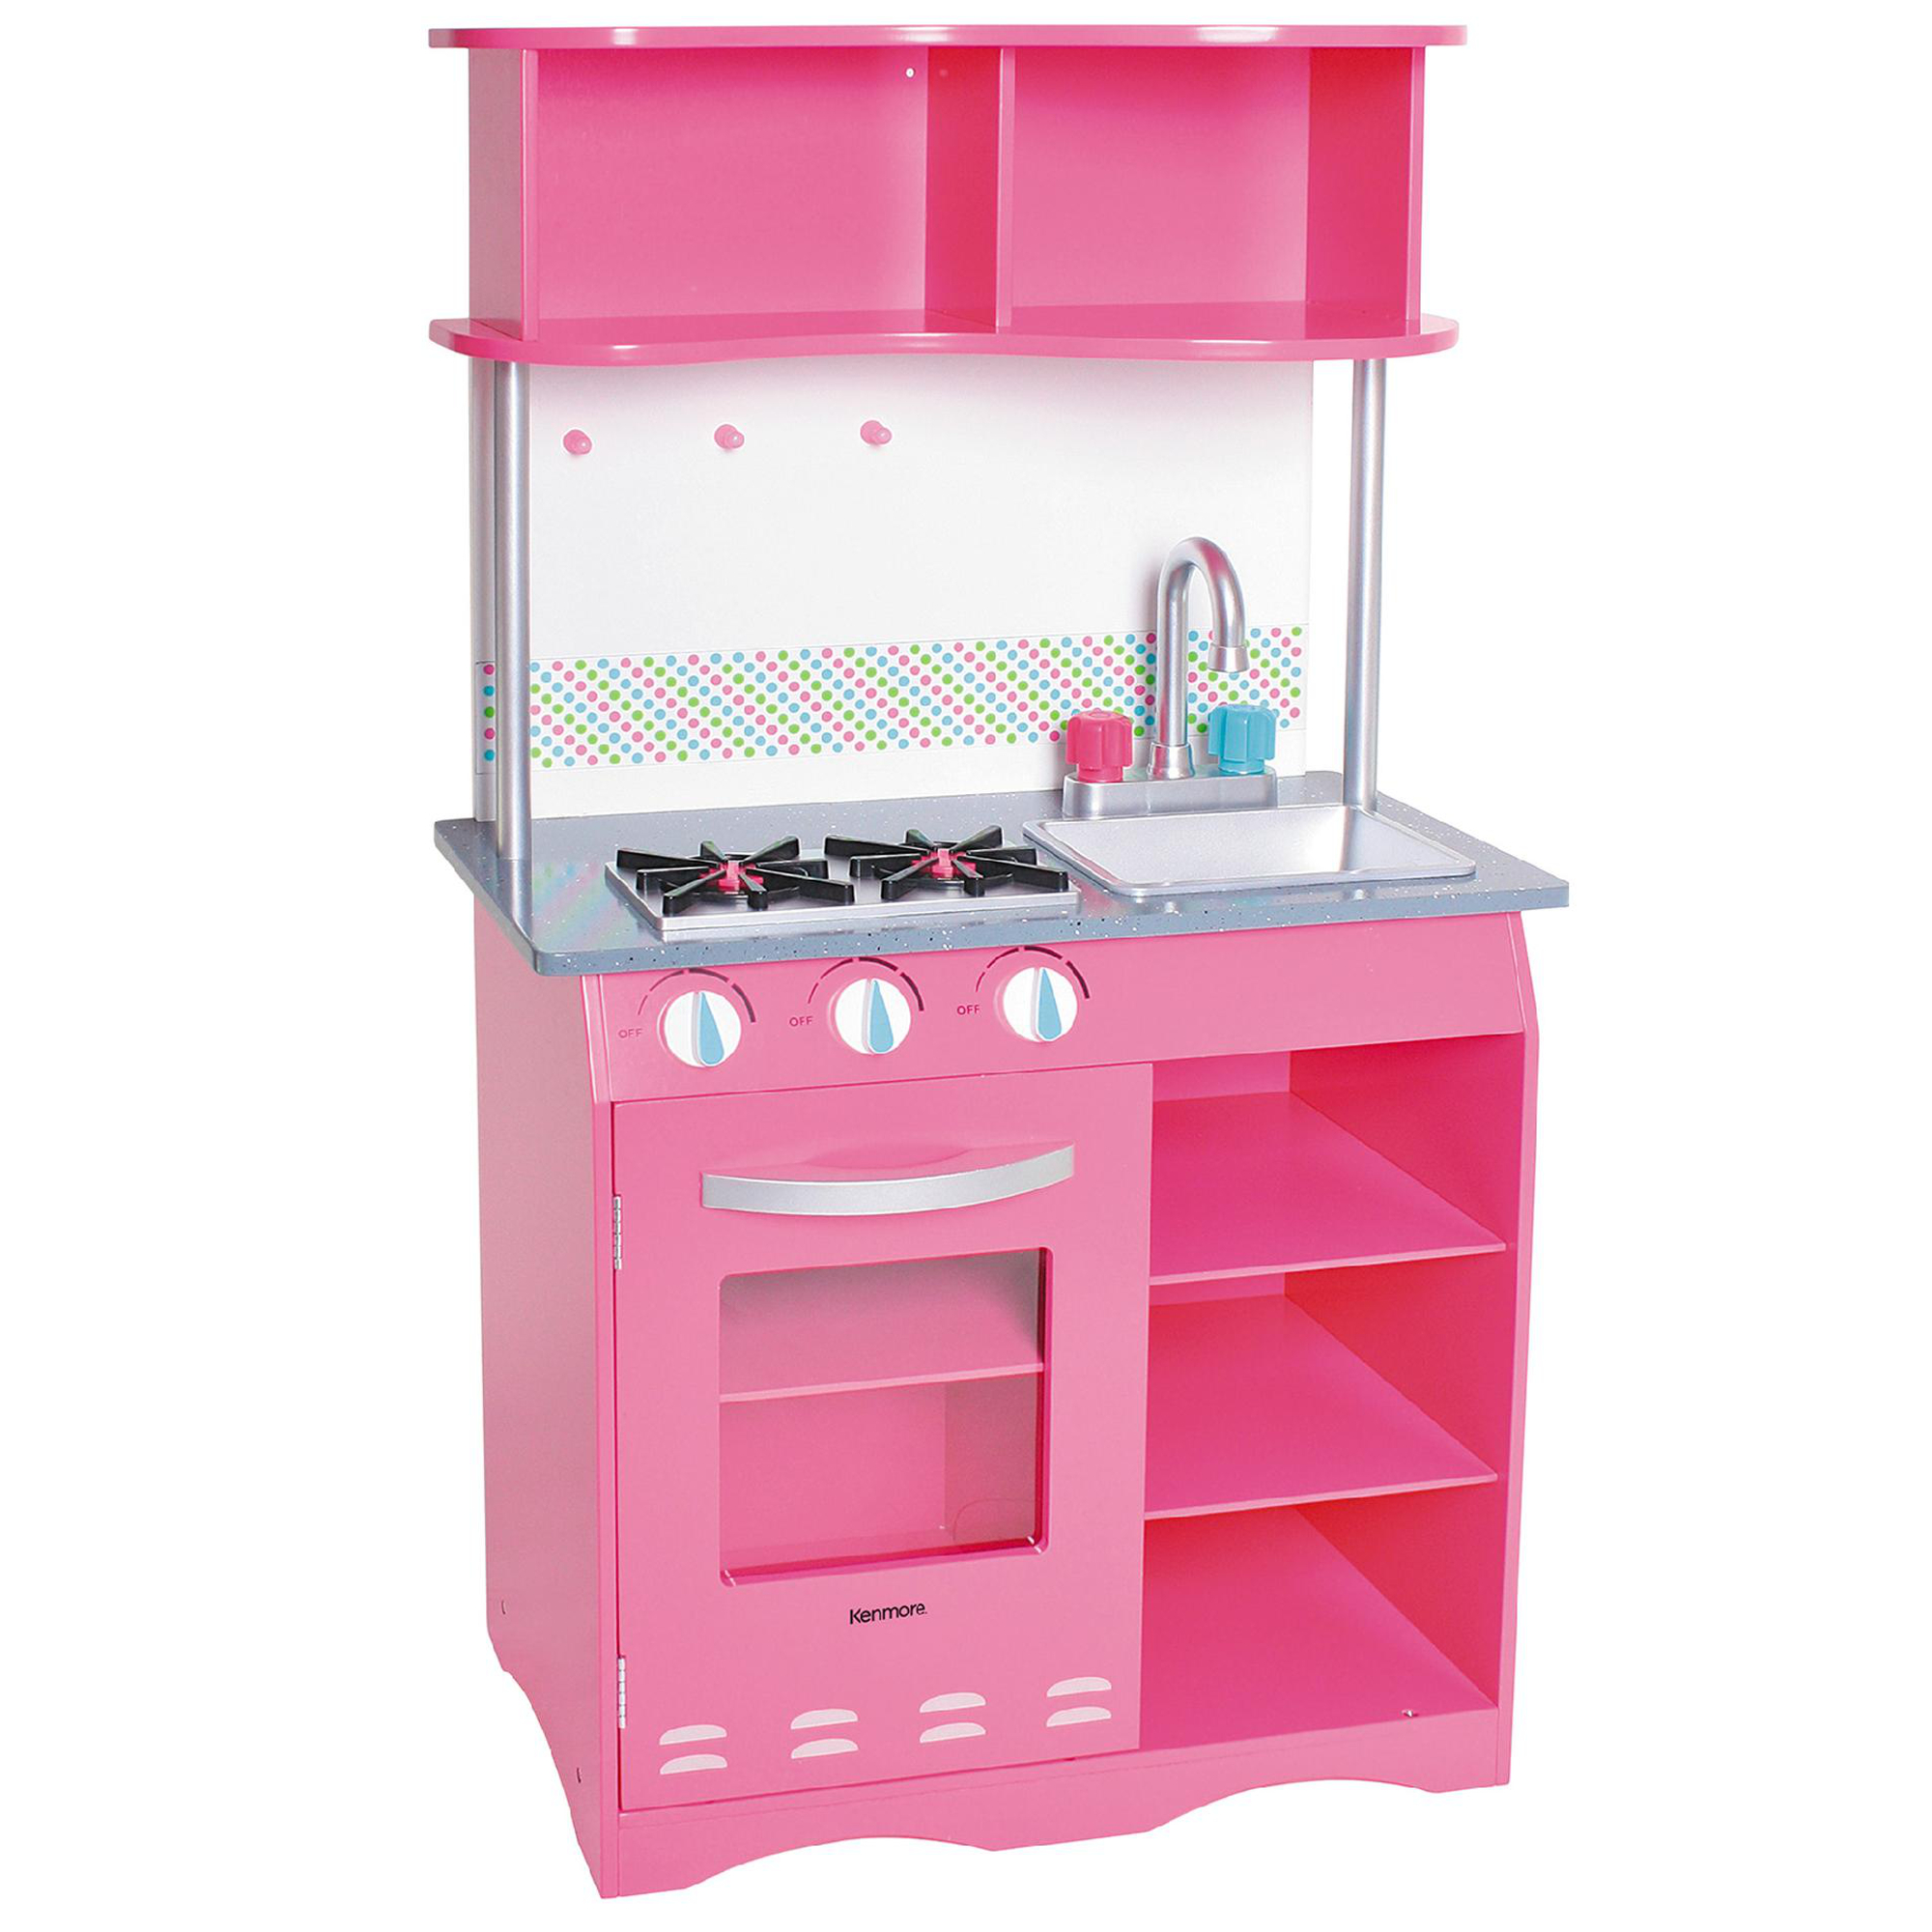 wood kitchen playsets kohler barossa faucet play kitchens sears kenmore wooden playset